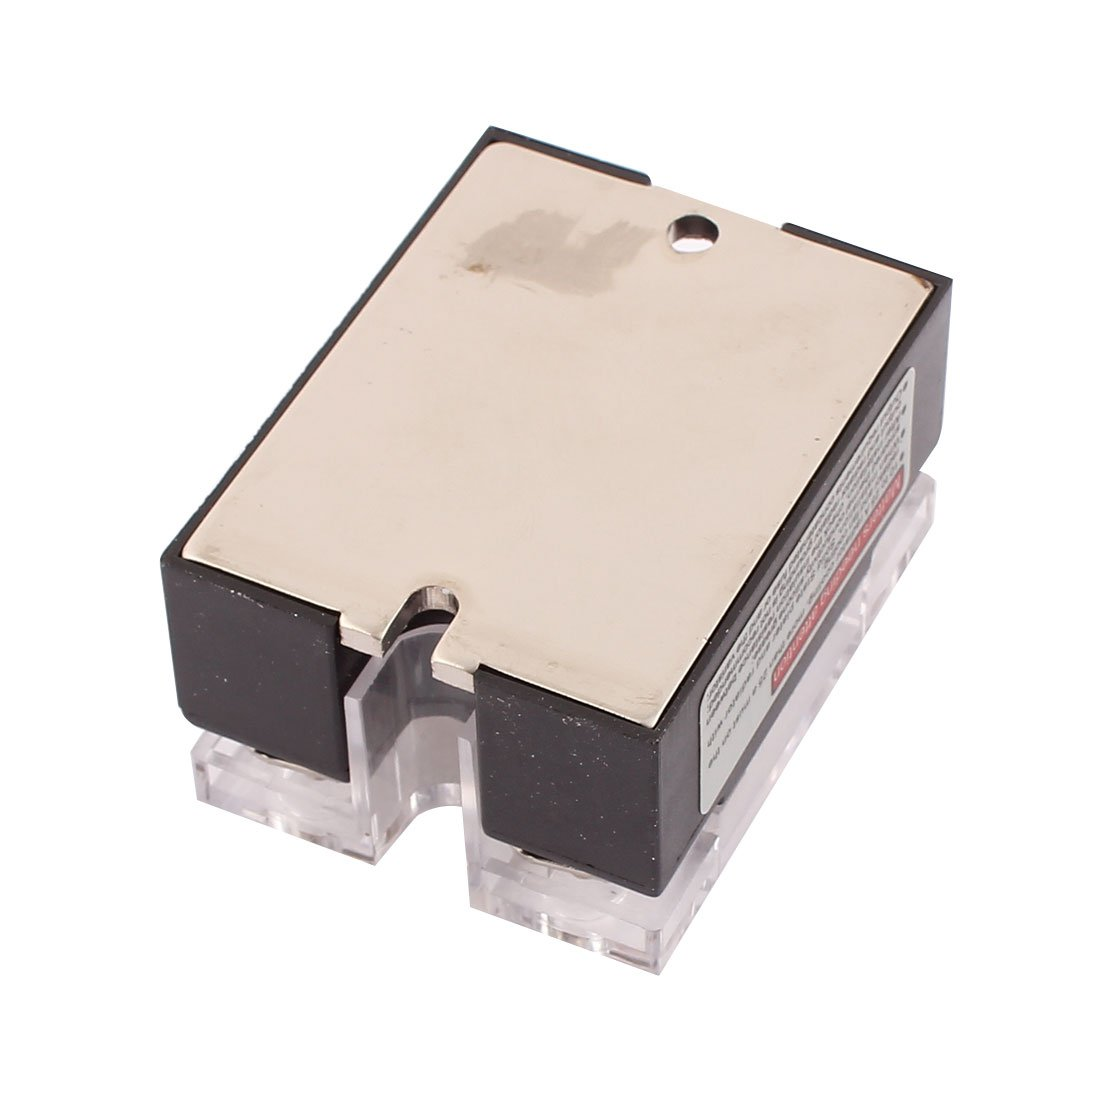 Uxcell Ash 10aa 70 280vac To 480vac 10a Single Phase Solid State Relay Medium Power Acsolid Ac Authorized Home Improvement